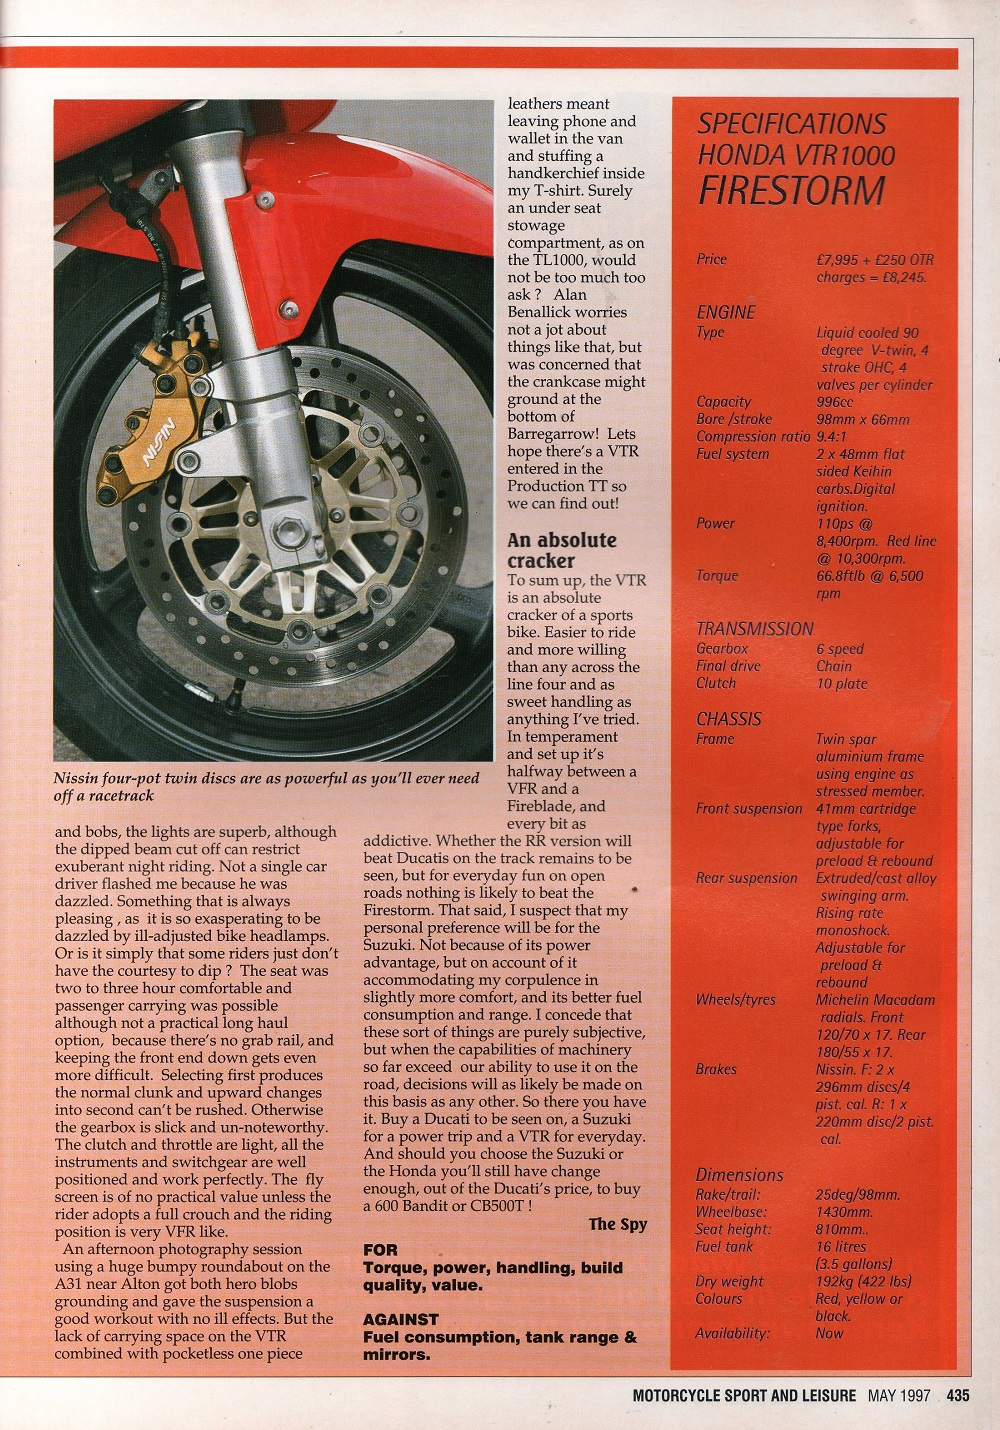 1997 Honda Firestorm road test.5.jpg